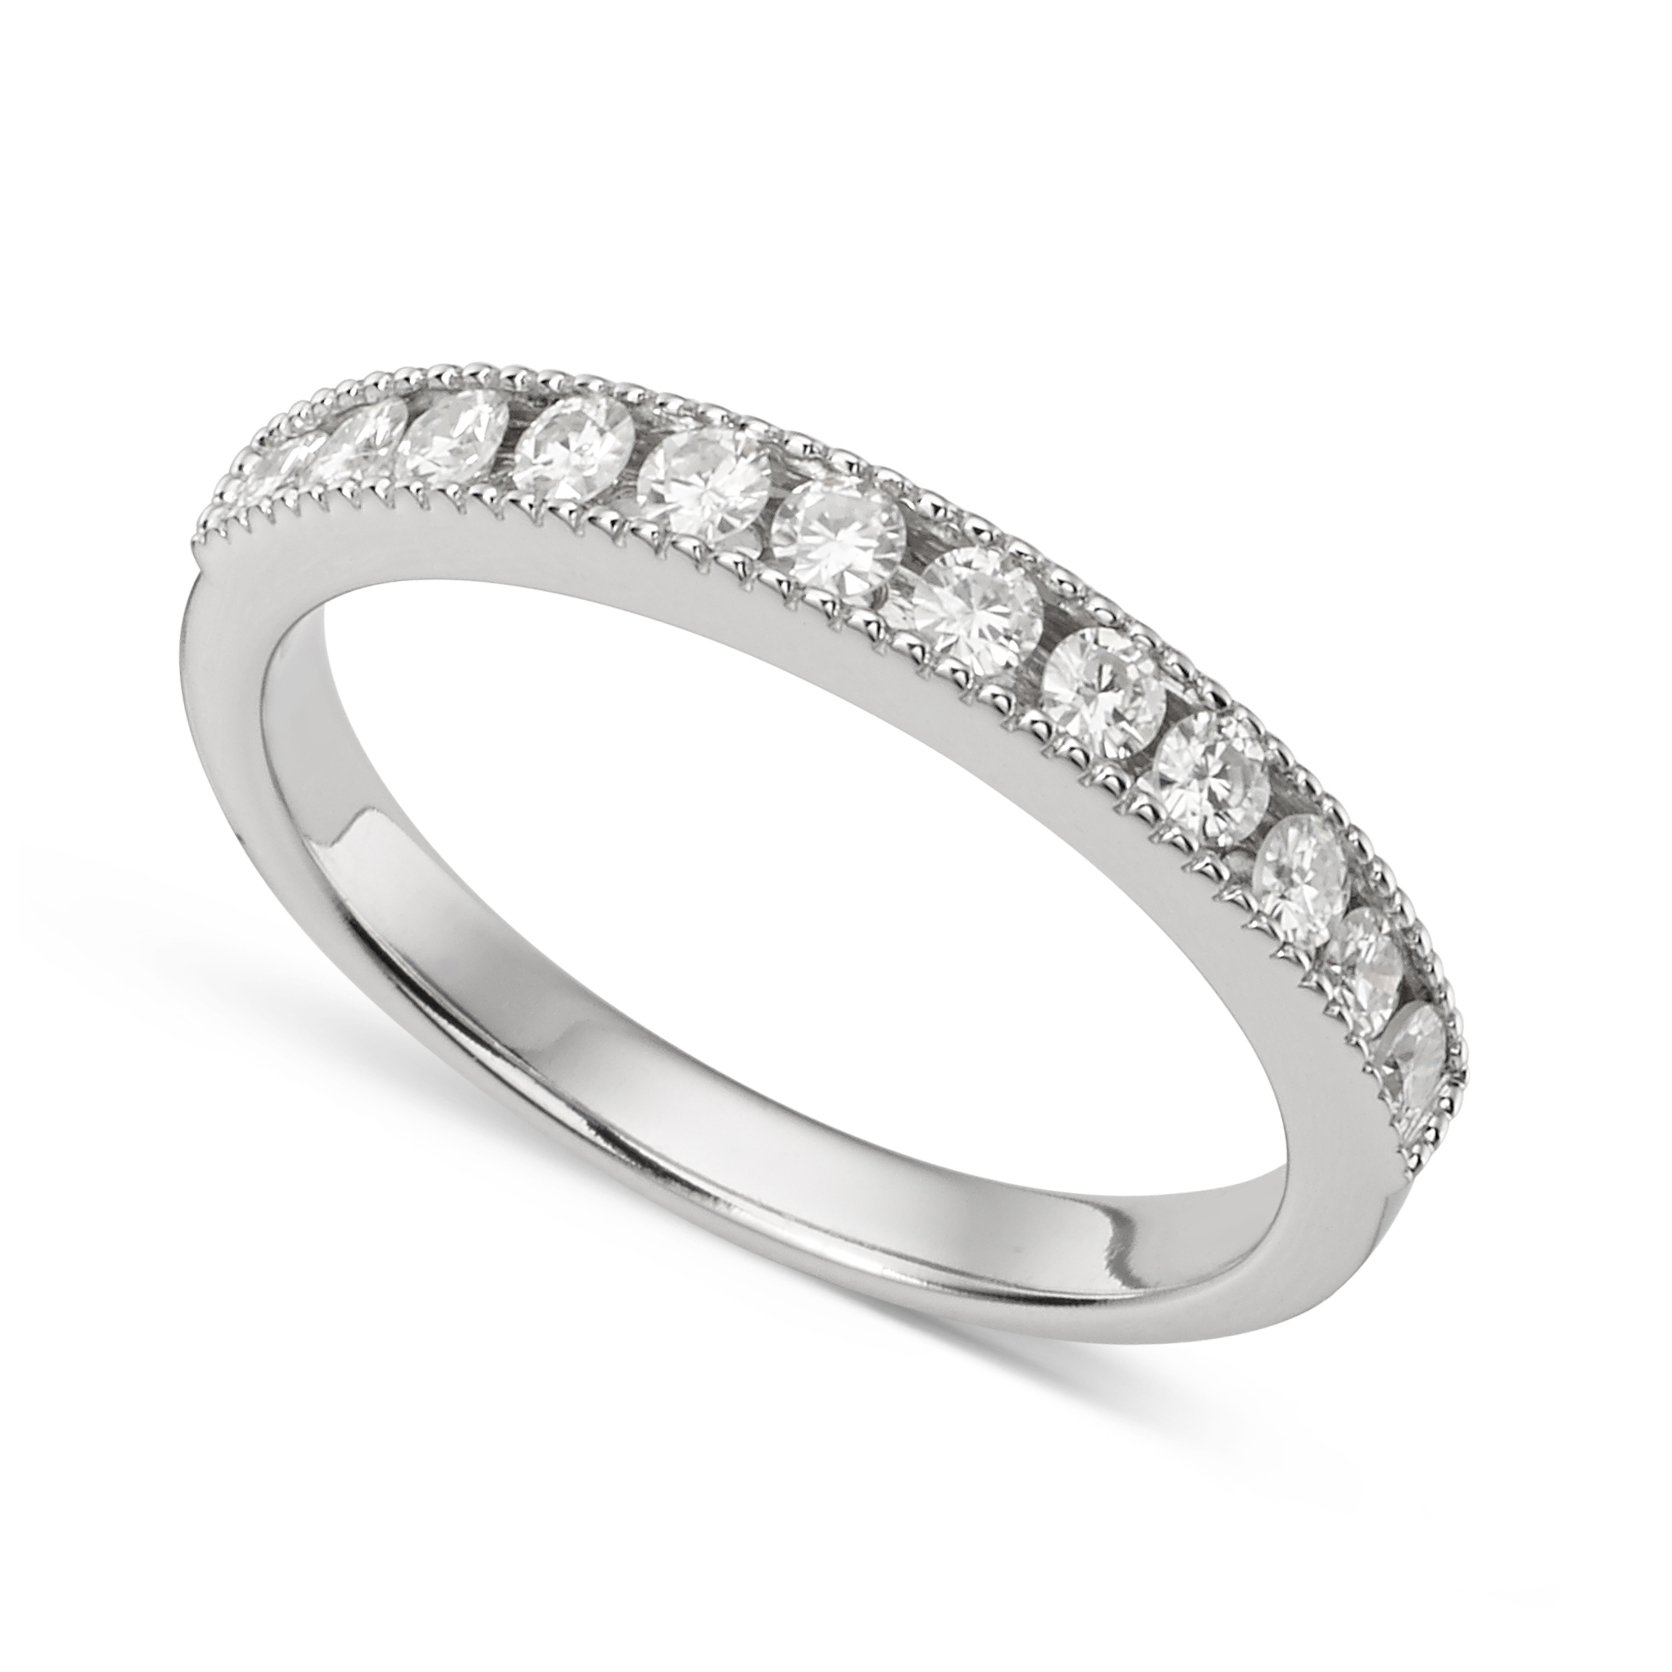 Forever Classic 2.0mm Melee Moissanite Channel Band- size 7, 0.36cttw By Charles & Colvard